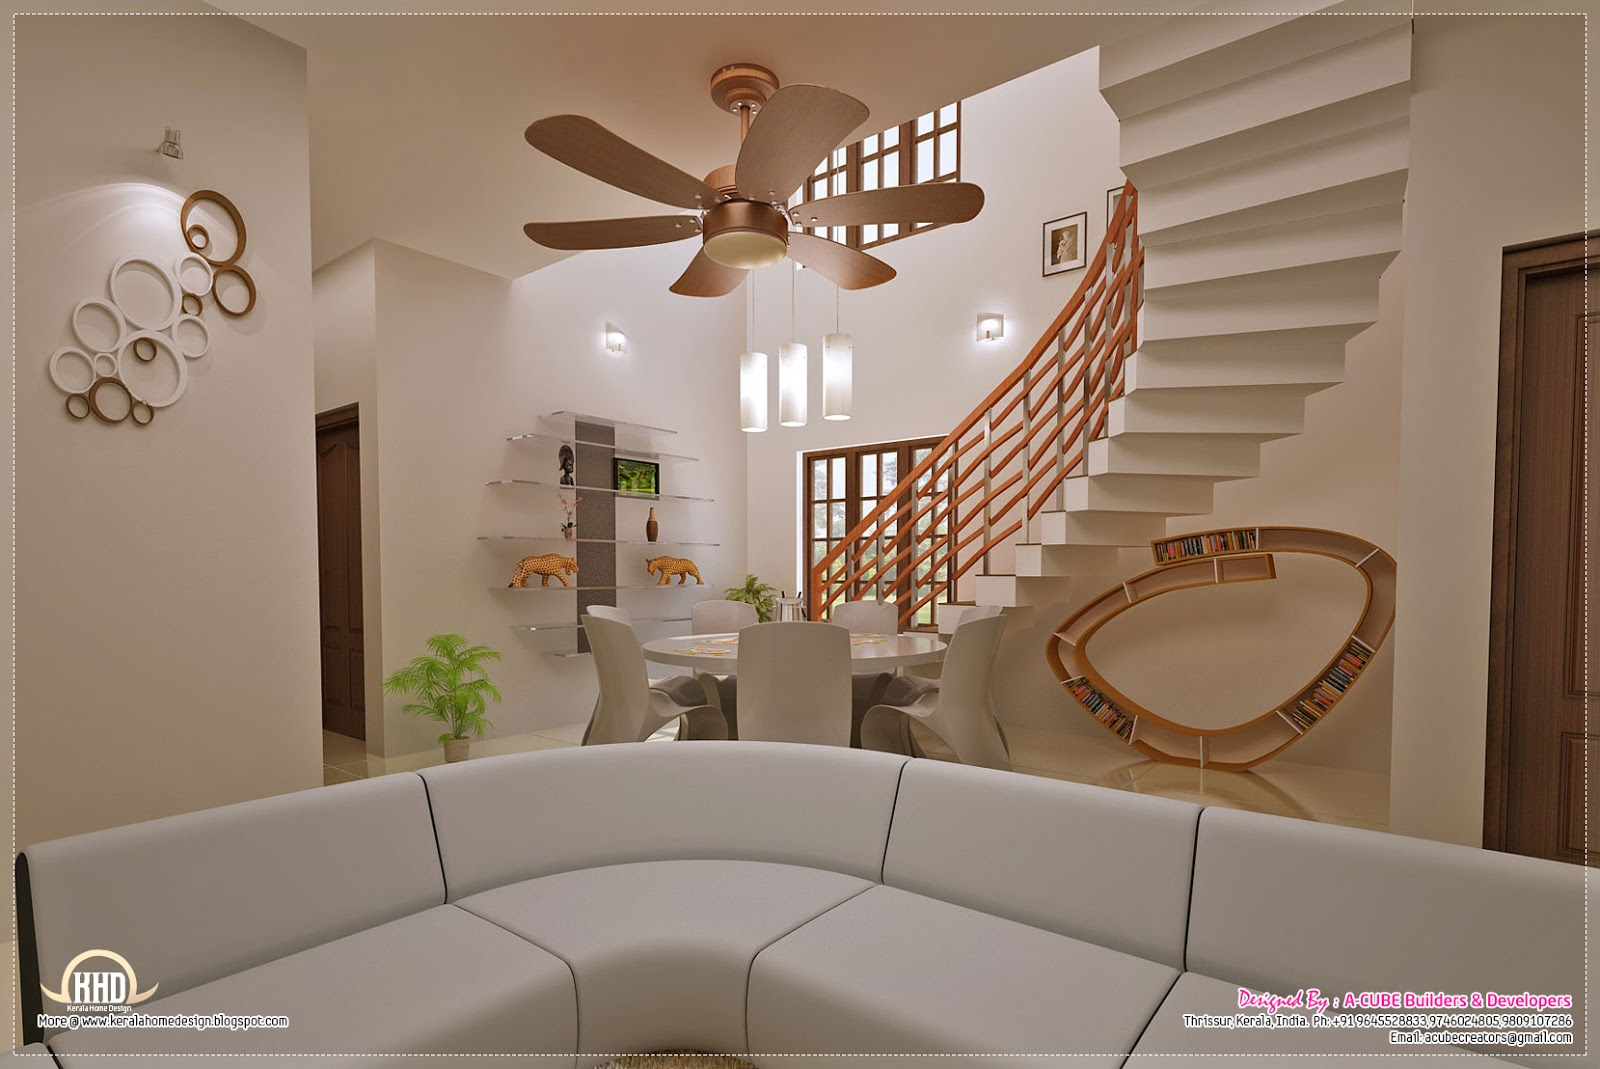 Awesome interior decoration ideas kerala home design and for House and home decorating